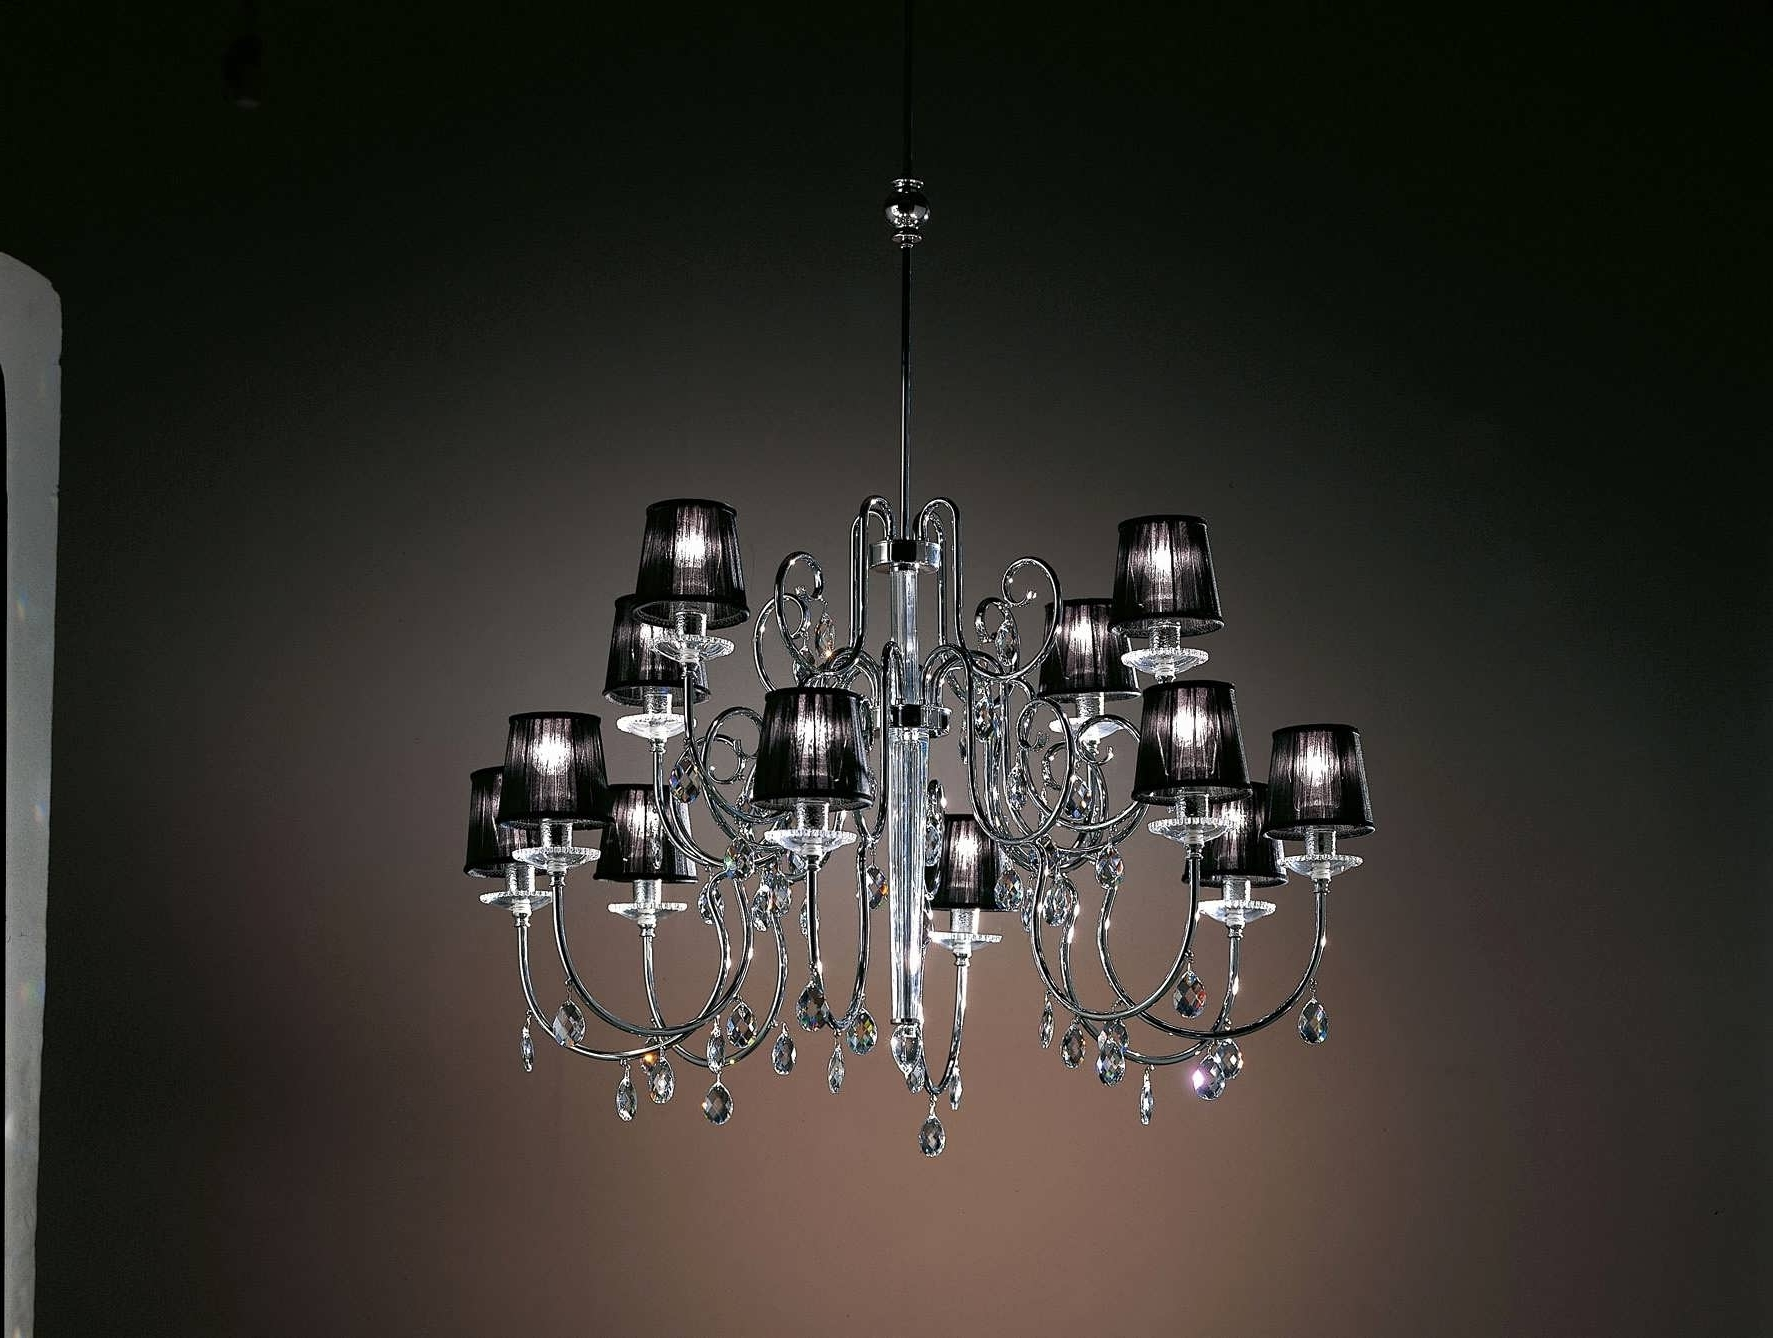 Large Chandeliers Pertaining To Well Known Light : Modern Chandelier Lighting Small Black Keywordrelevance (View 11 of 20)